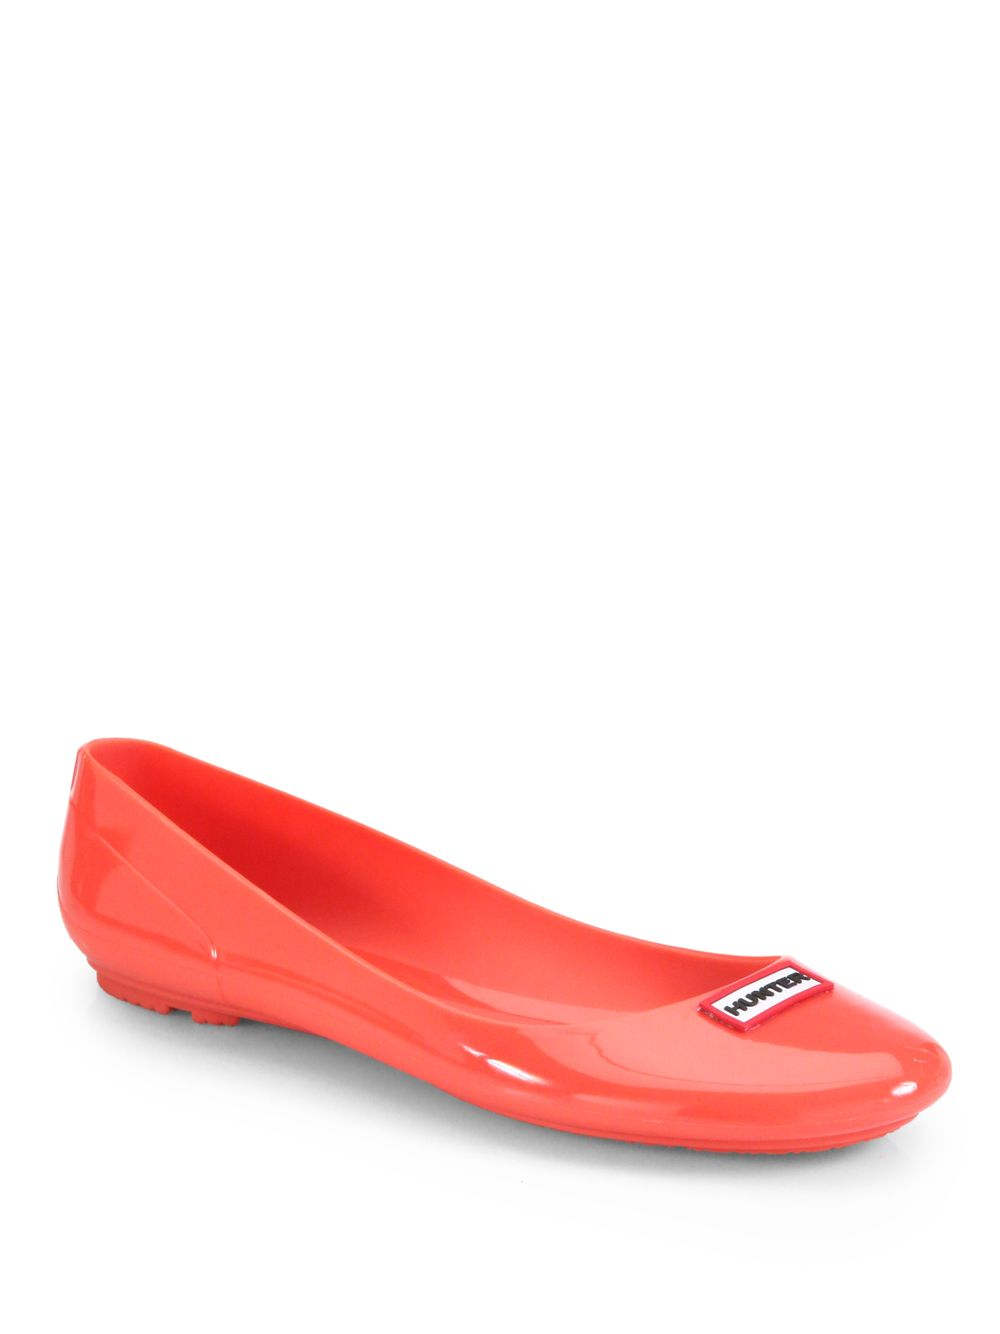 Hunter Romilly Jelly Ballet Flats In Red Lyst